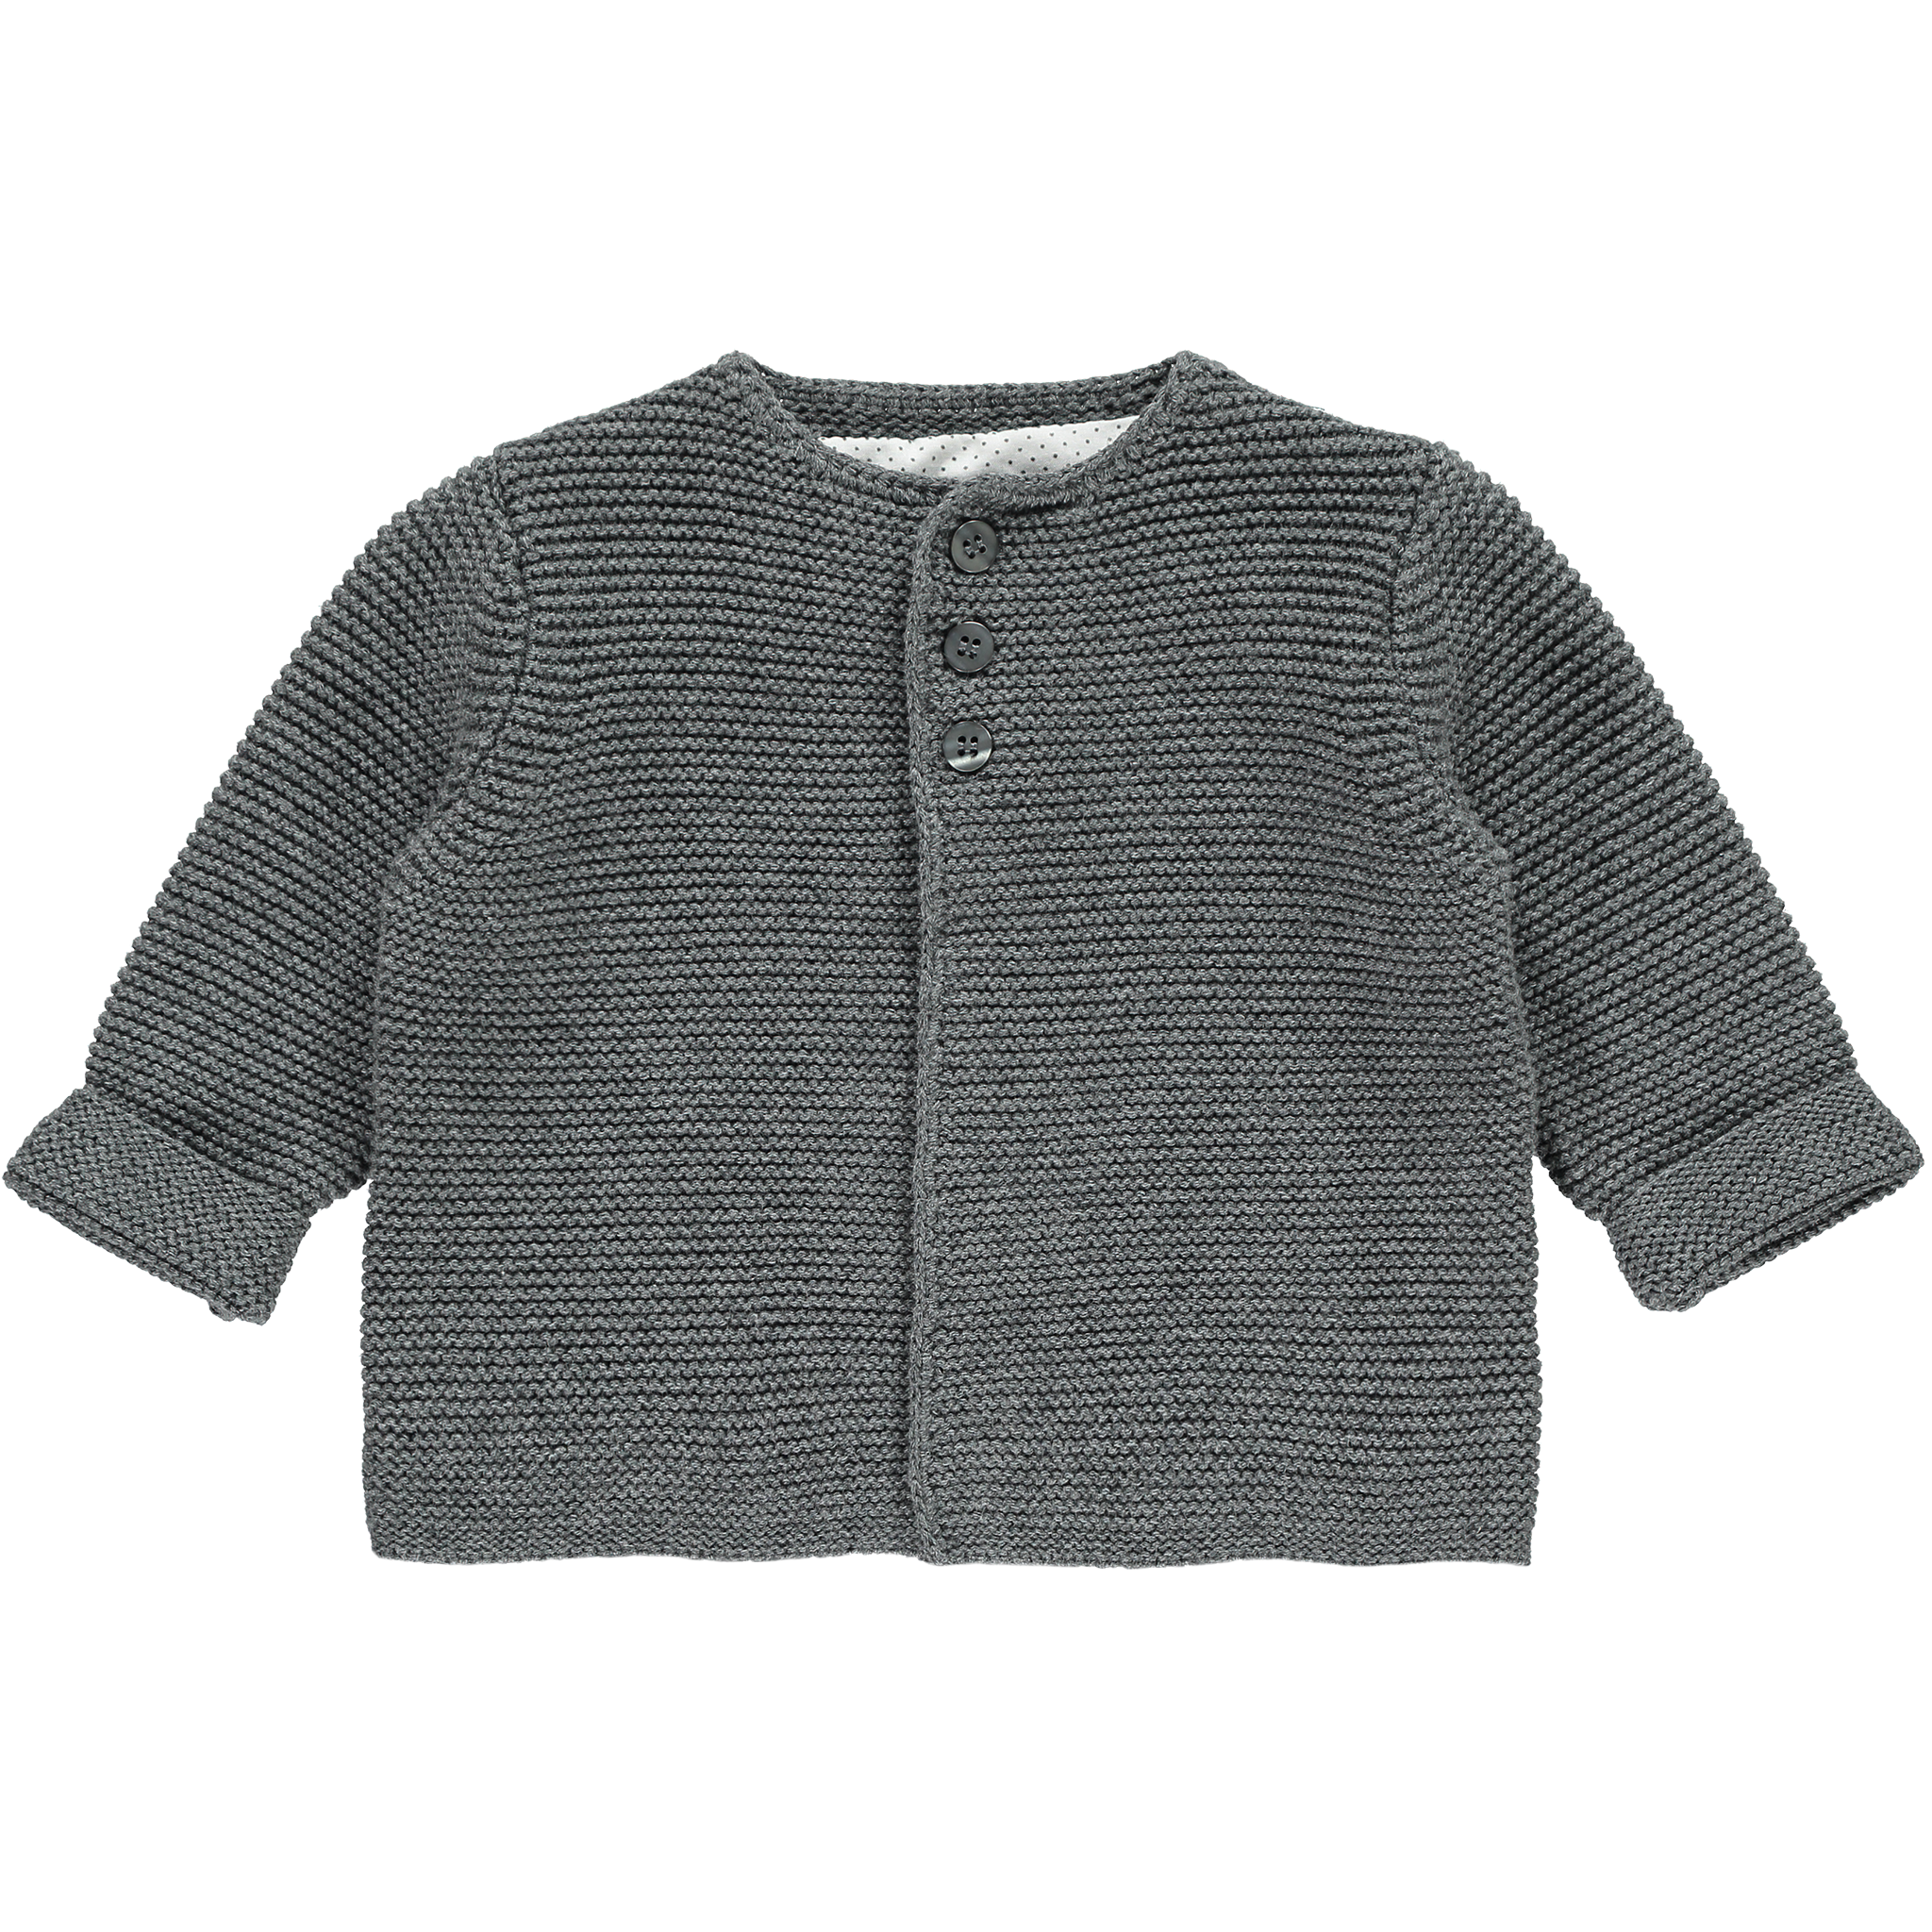 Charcoal Cotton Cardigan